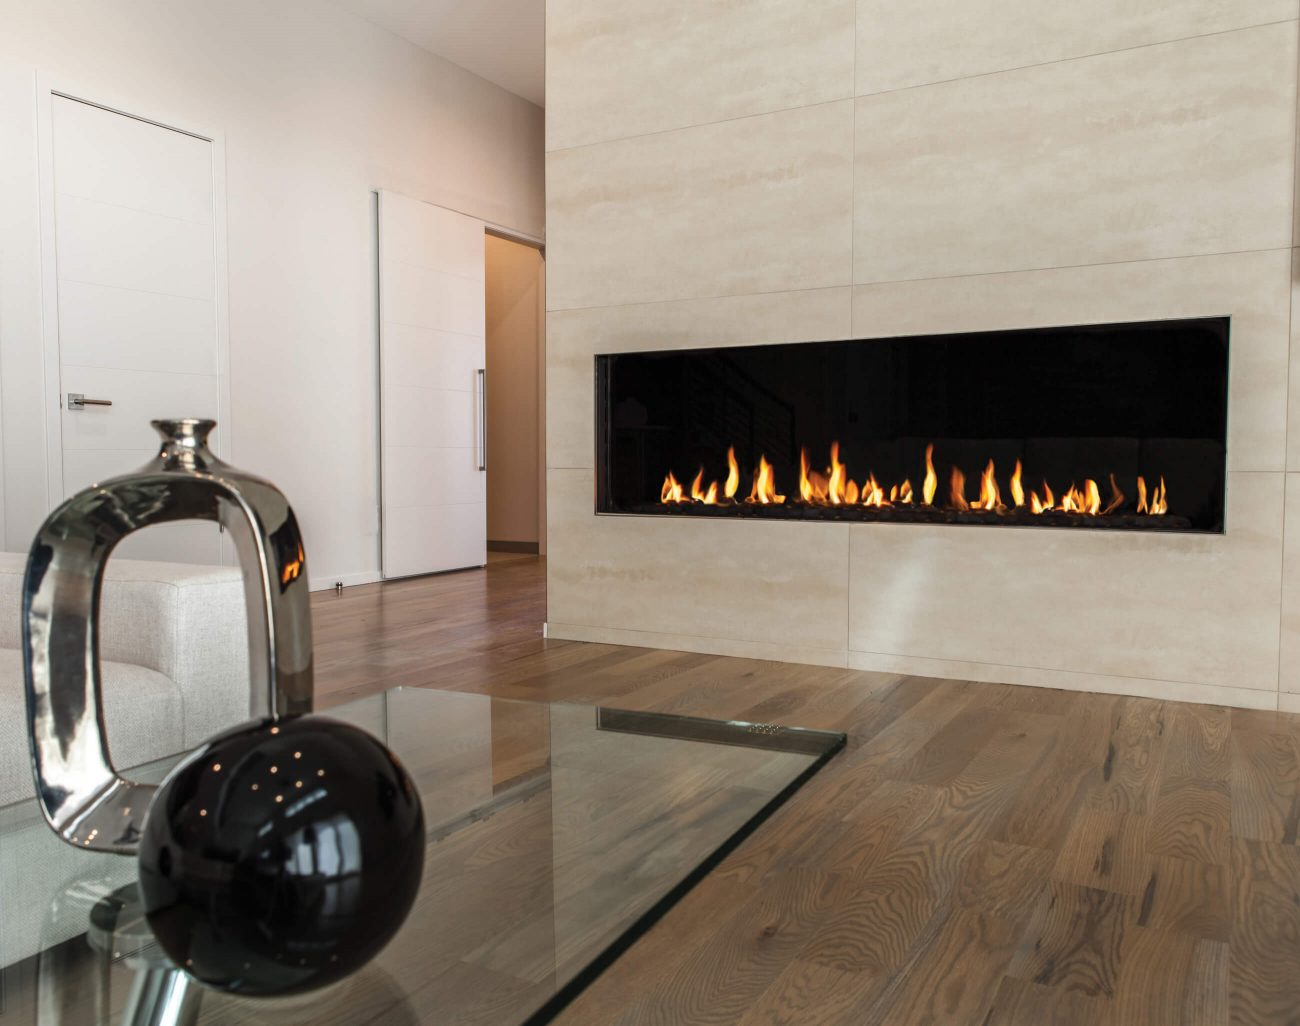 Flare Front modern linear fireplace